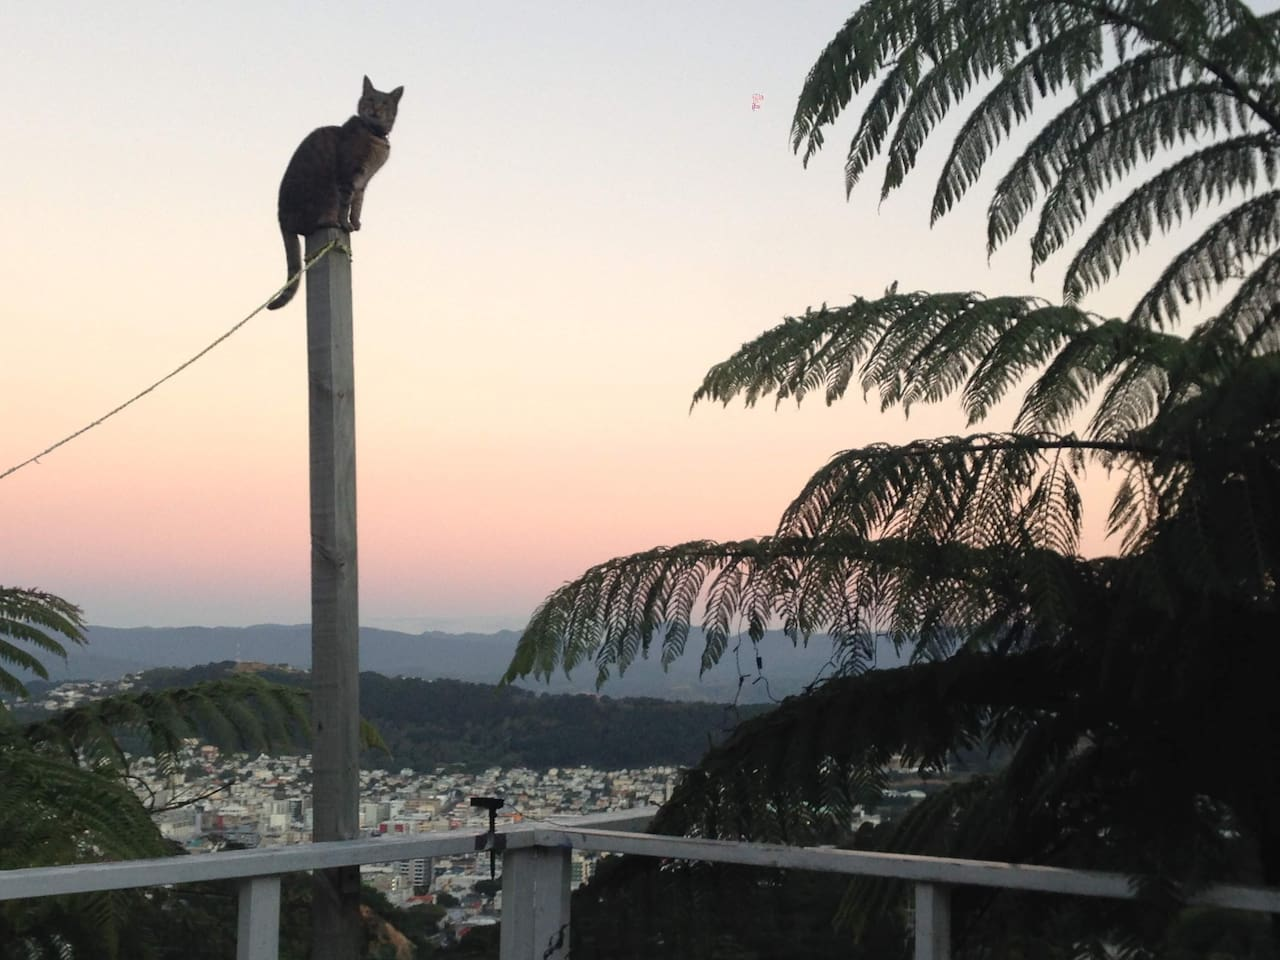 Lydie Greco of #MagicDeciptor fame photograph of Rigga on top of post in a sunset background with Wellington city and Mt Victoria.